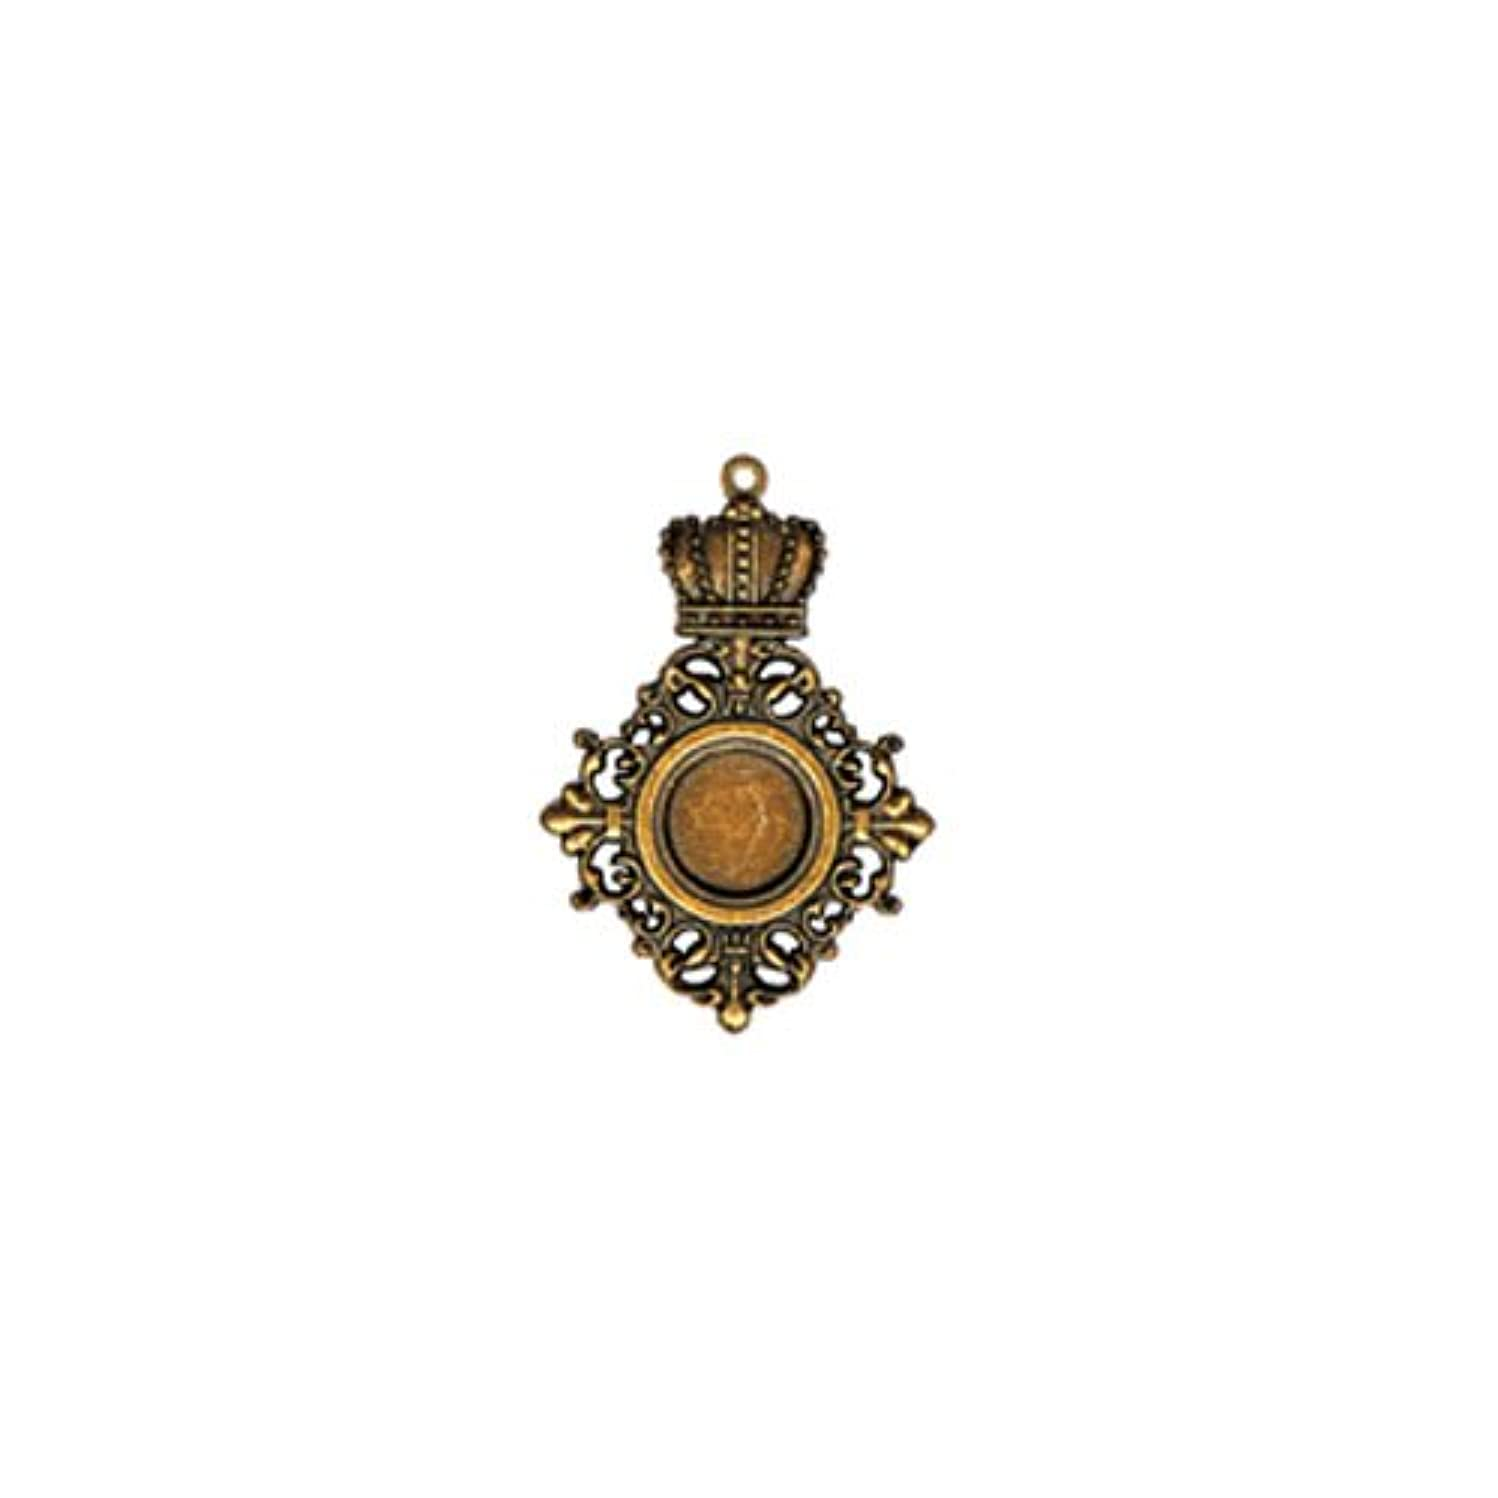 Spellbinders GL2-008 A Gilded Life Royal Medallion - Bronze Pendants